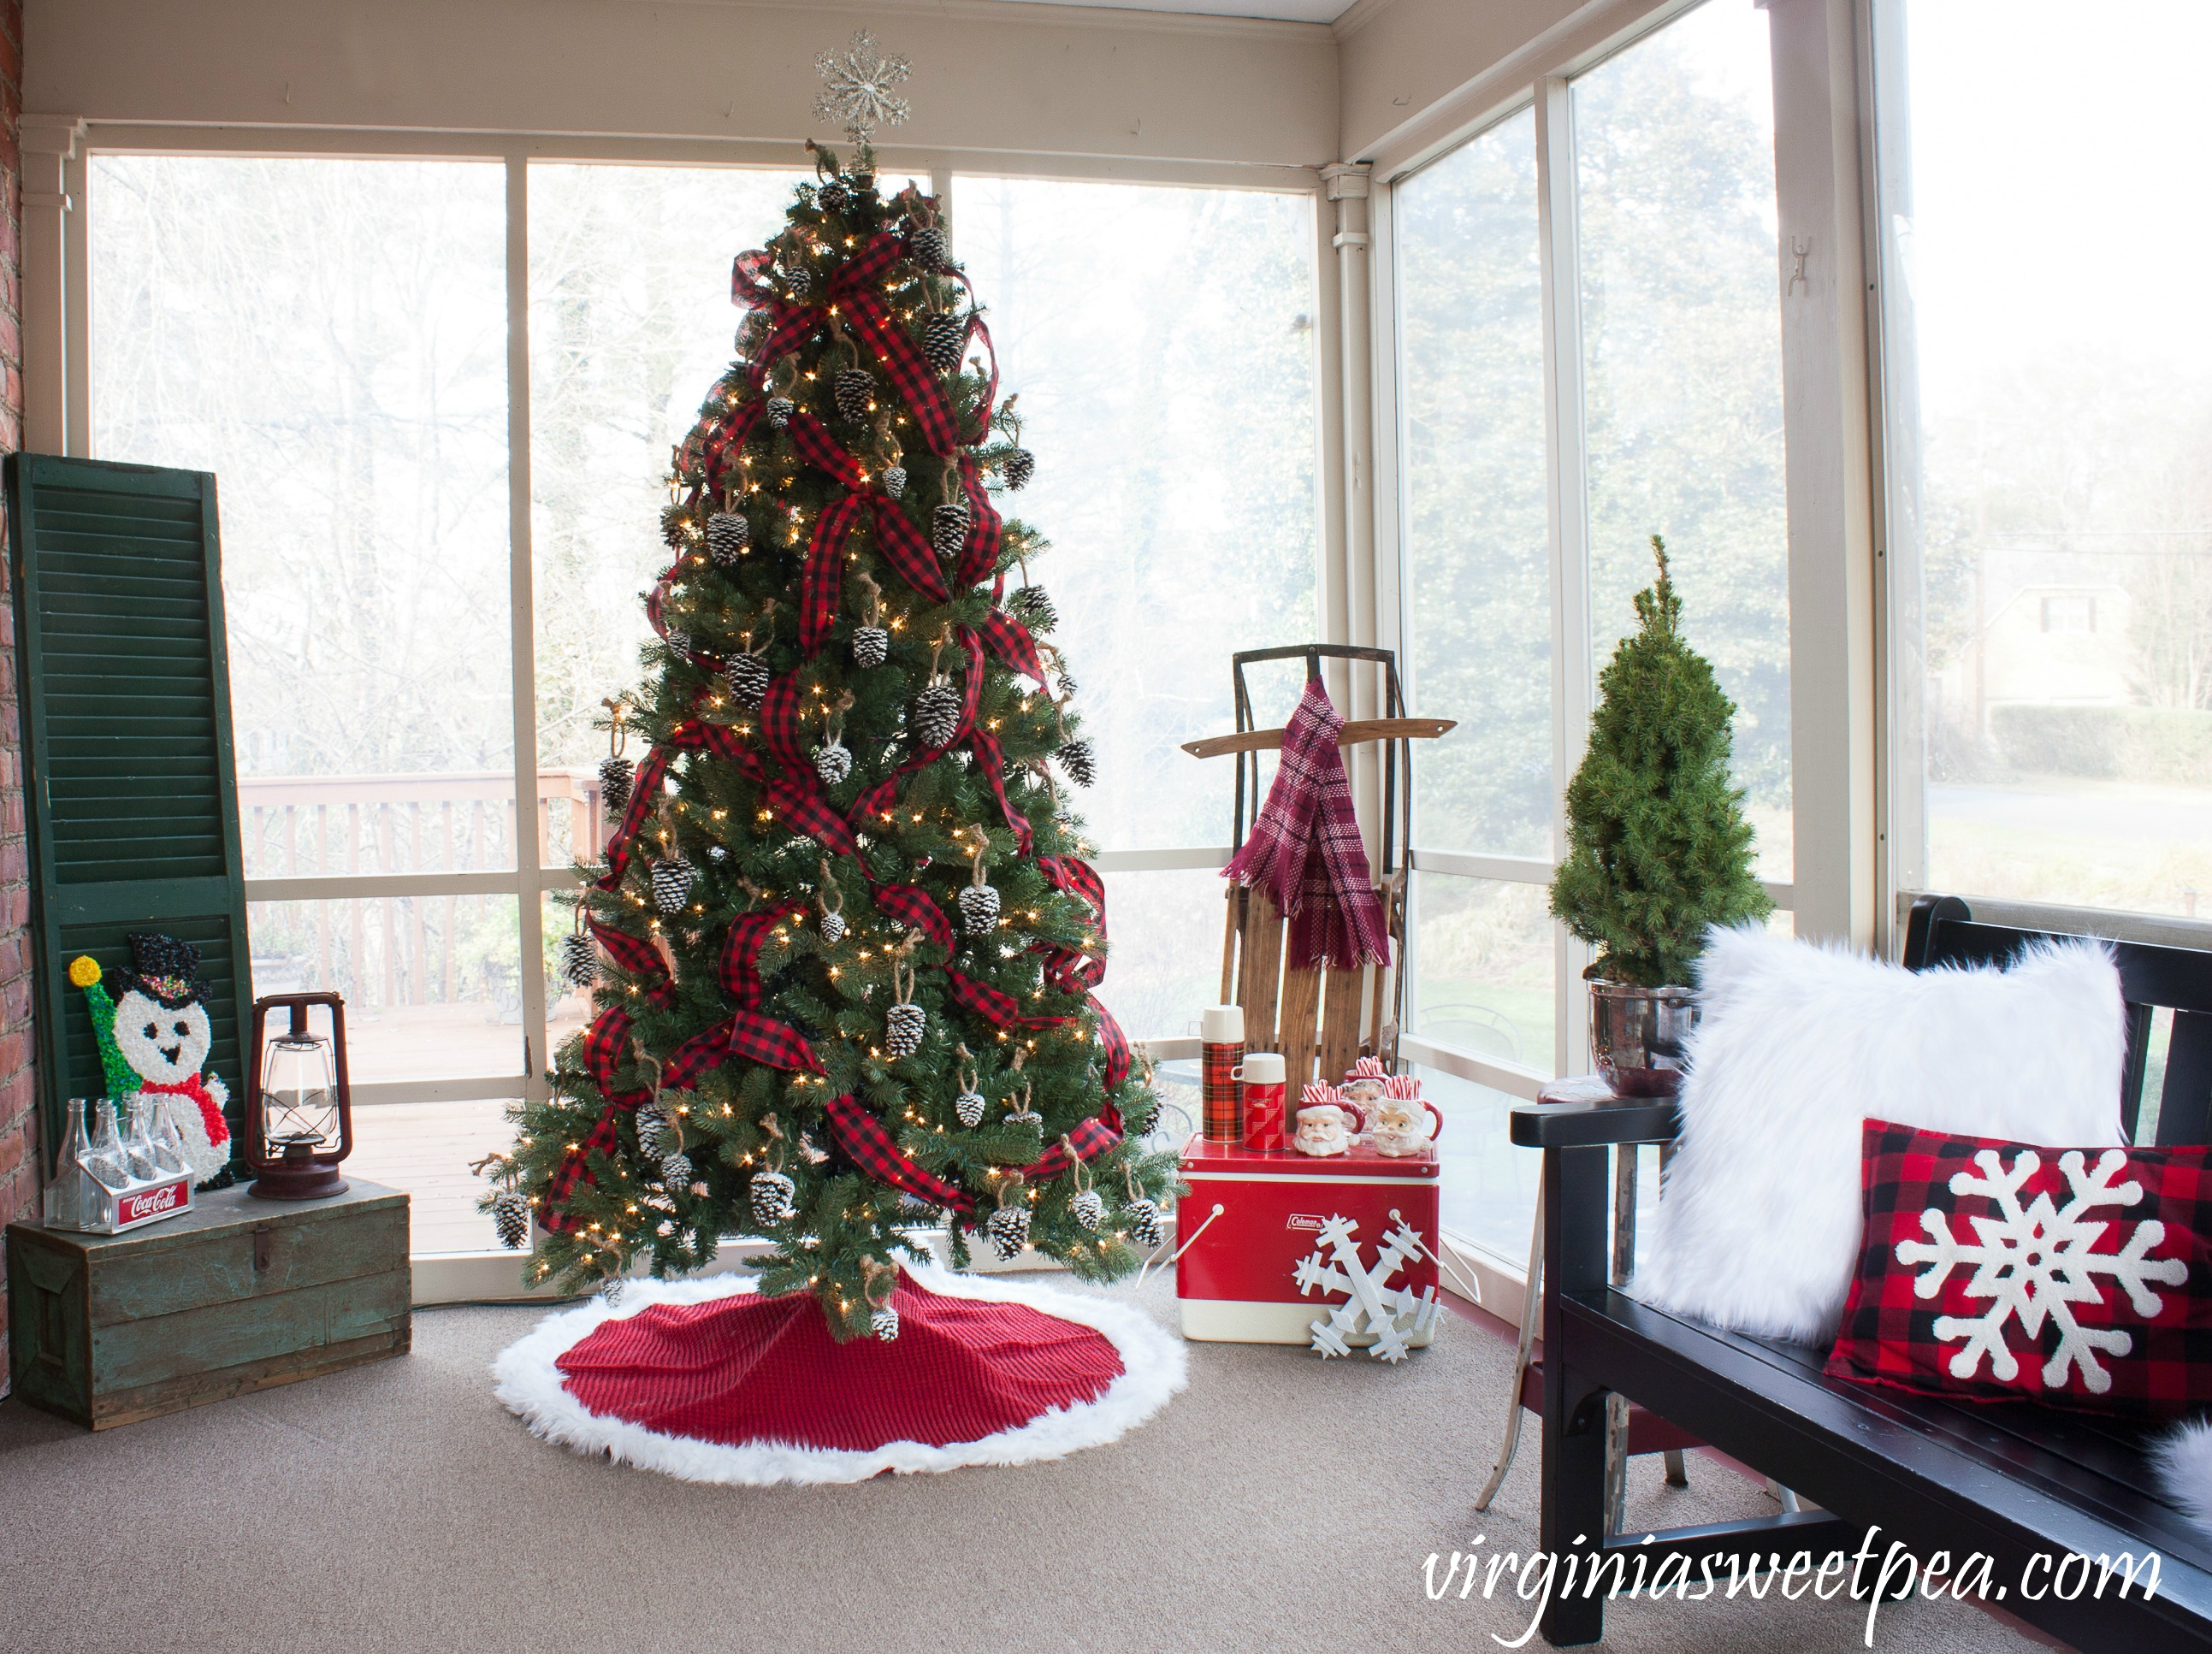 See A Porch Decorated For Christmas Using Mostly Vintage Decor And Get Ideas Decorating Your